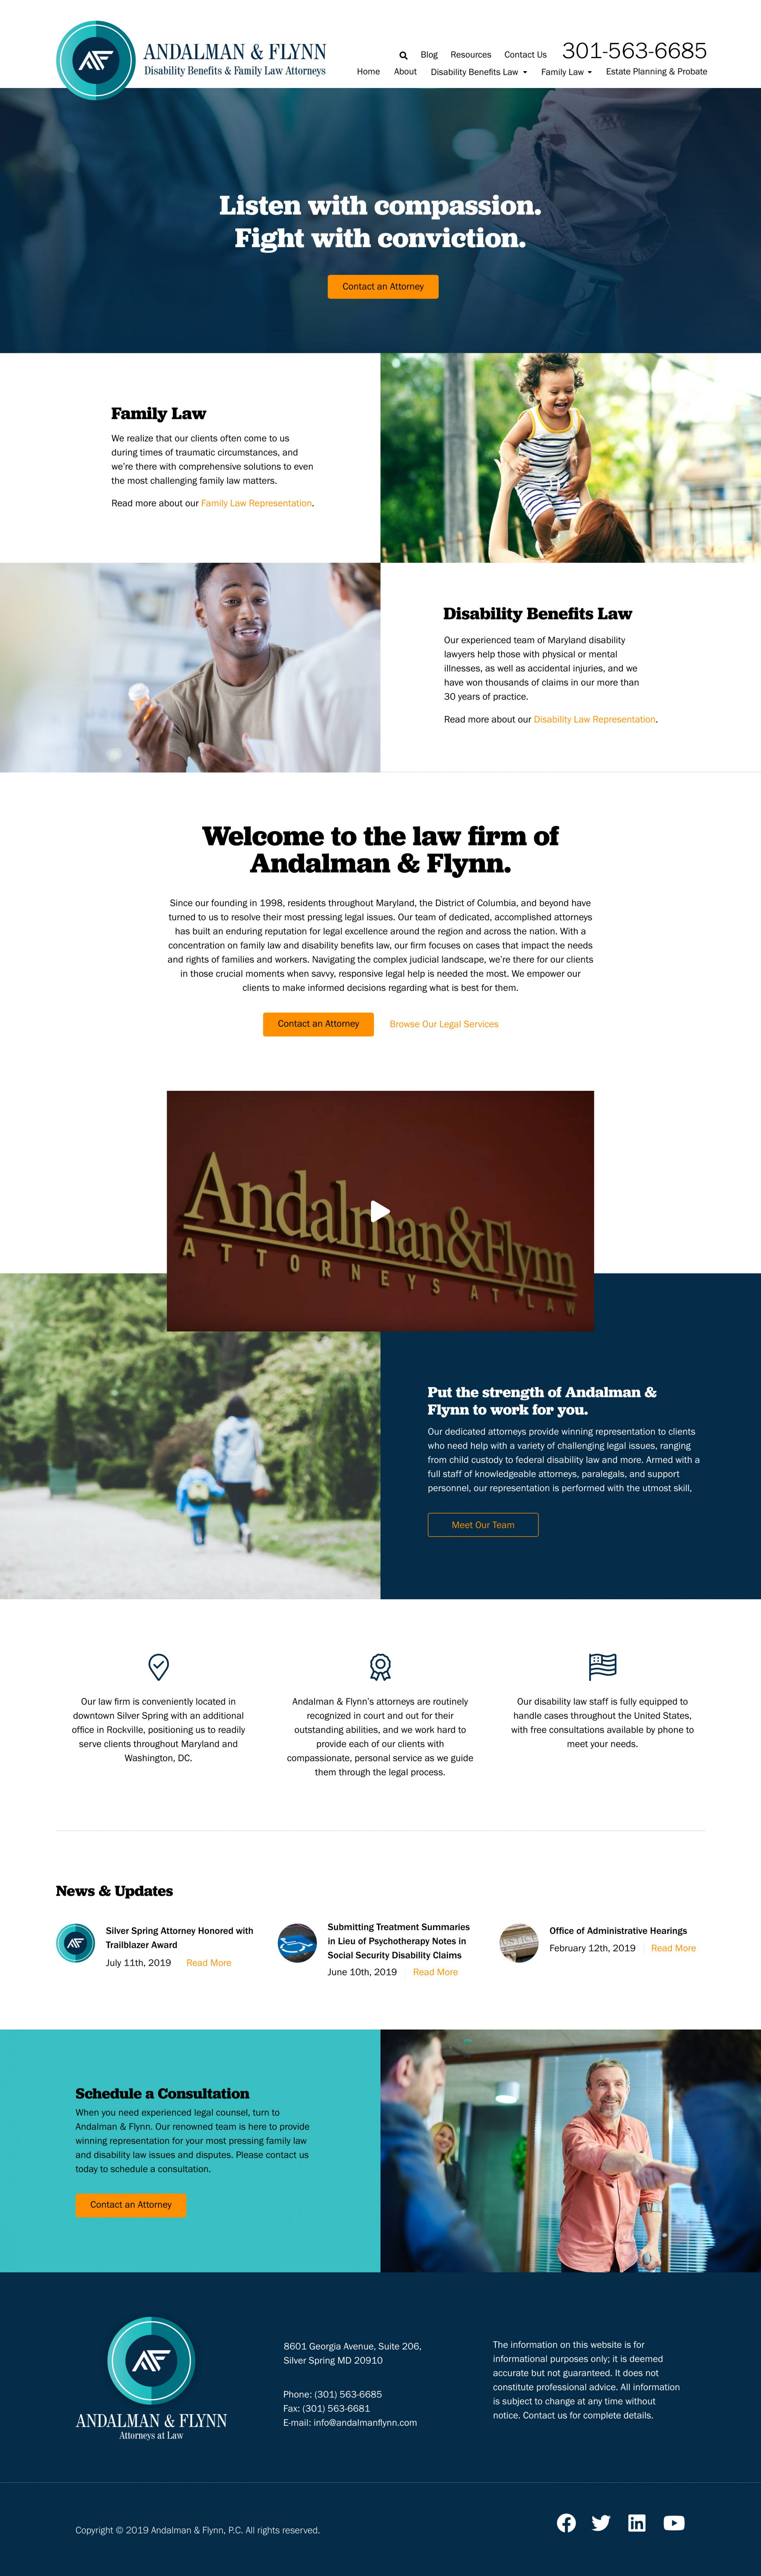 andalmanflynn.com home page